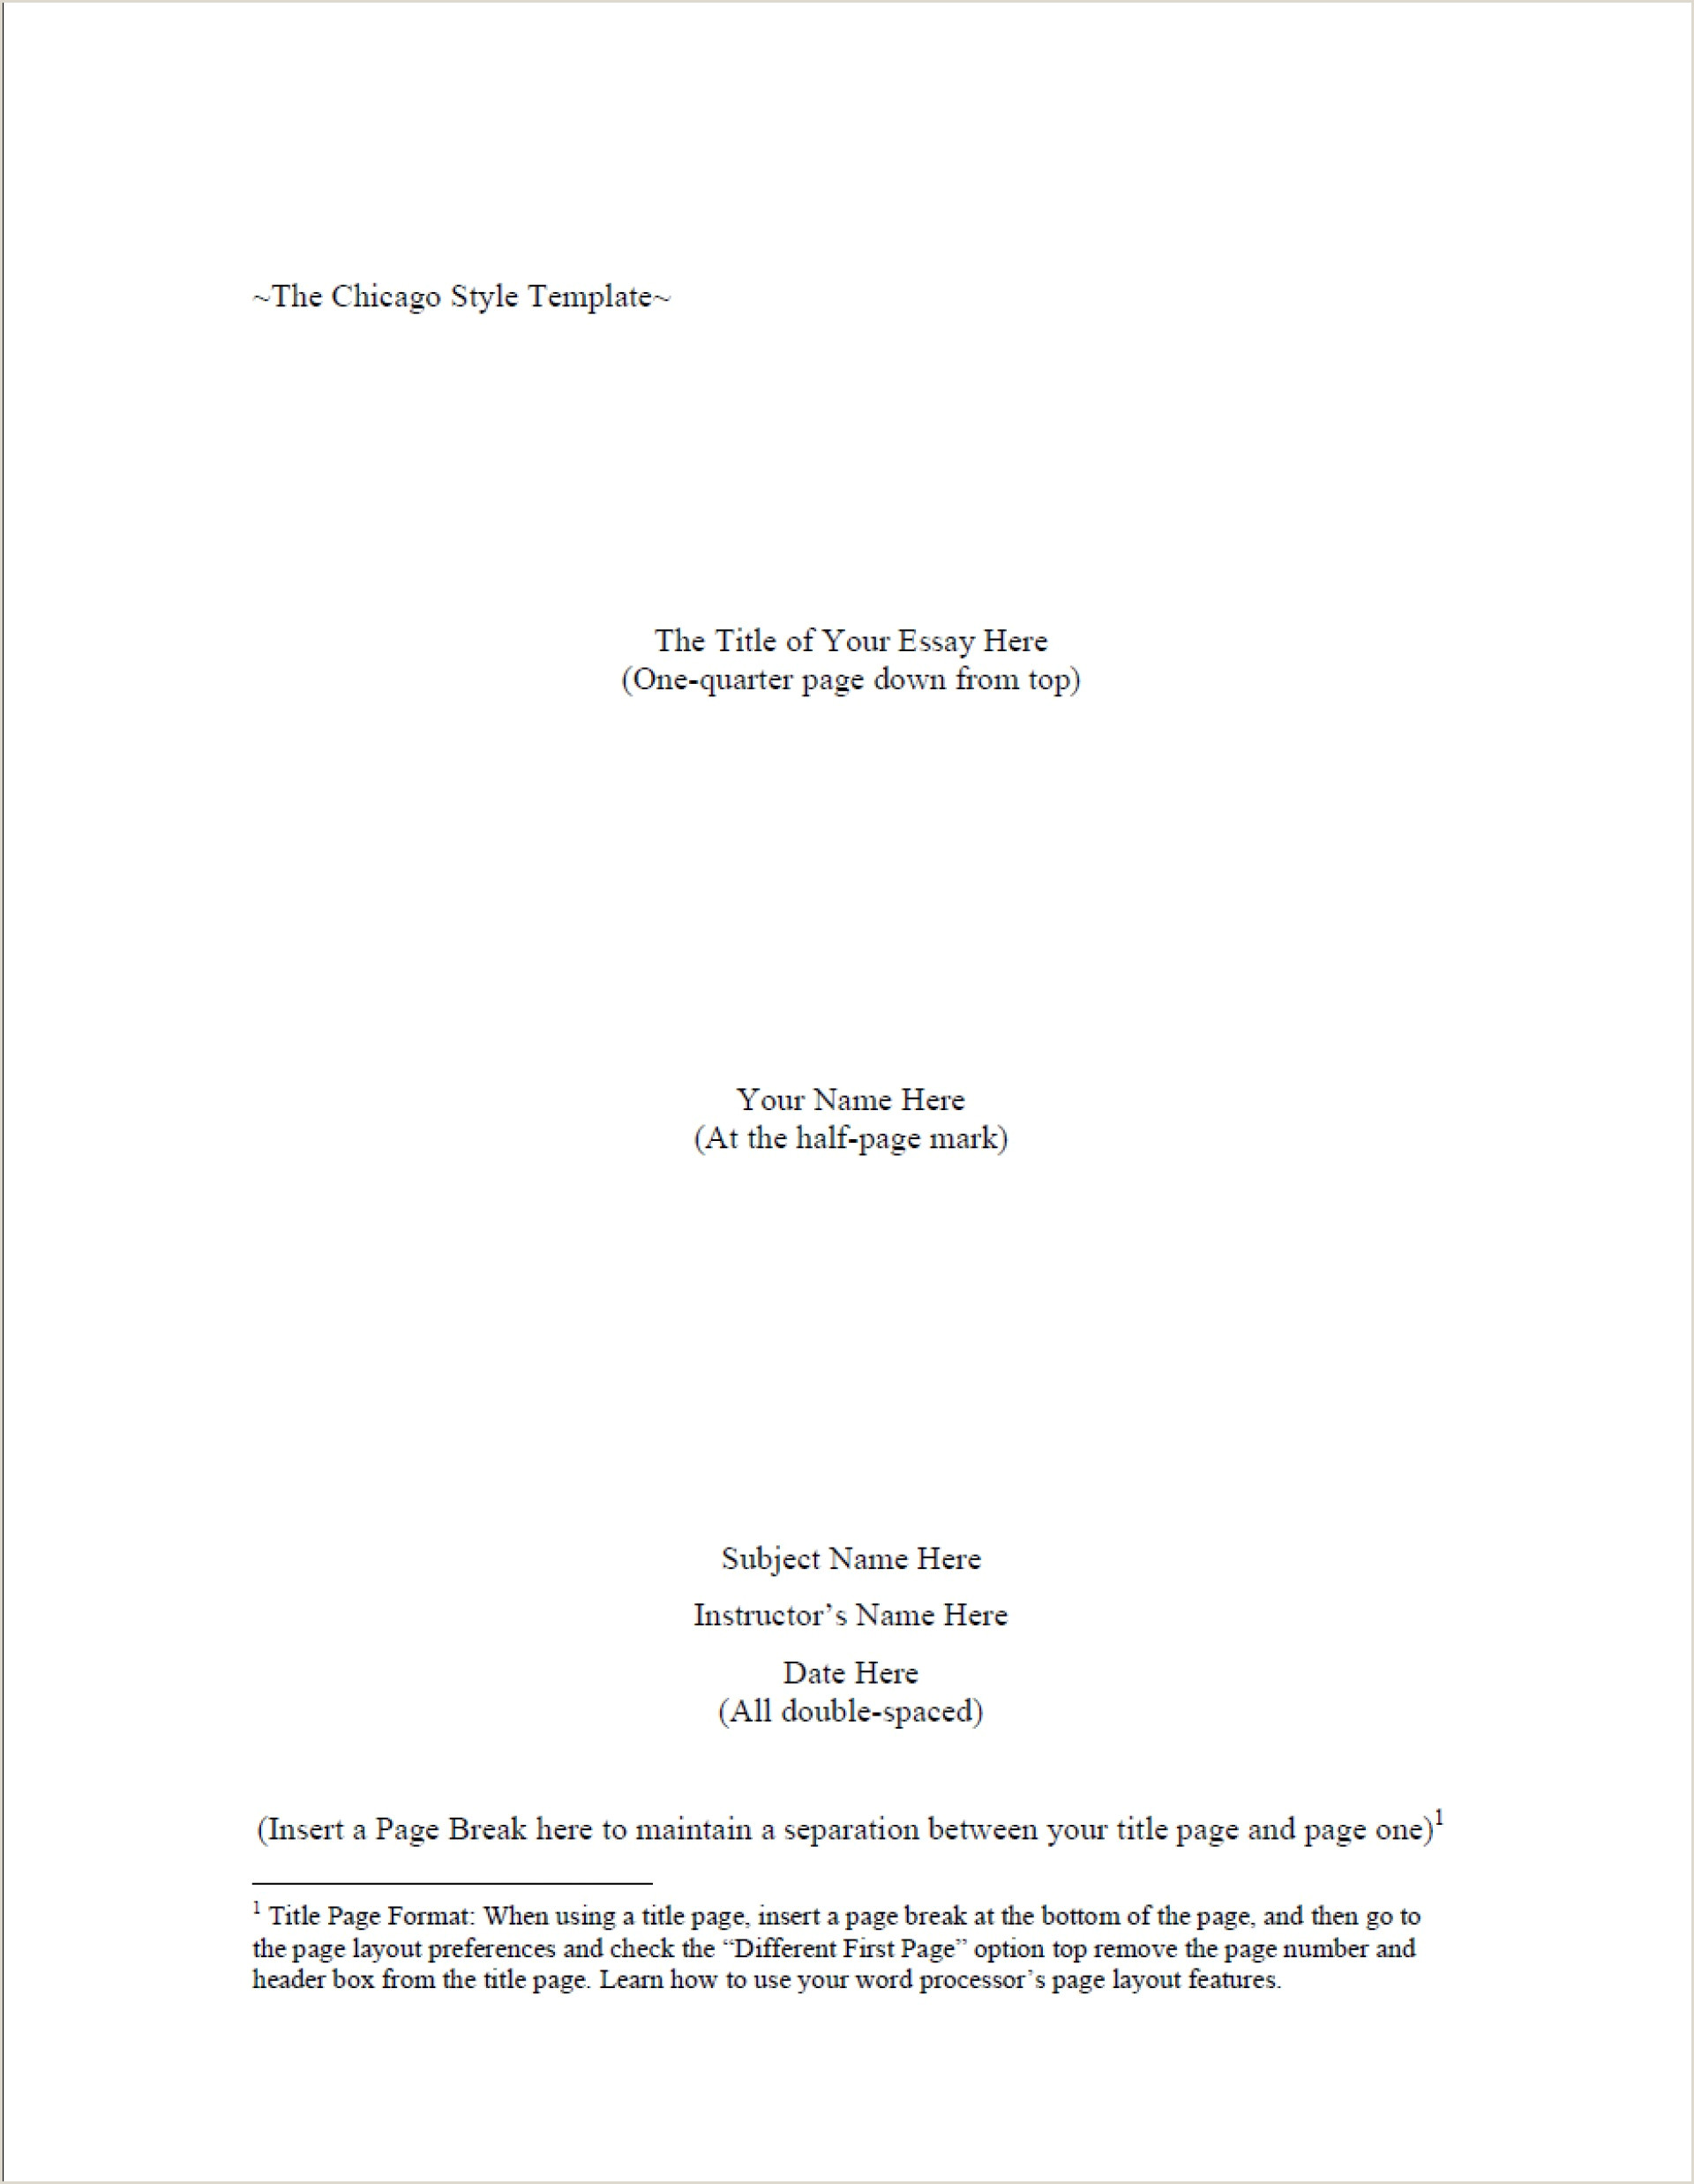 Chicago Style Template Doc 023 Research Paper Cover Page Beautiful Bunch Ideas Mla